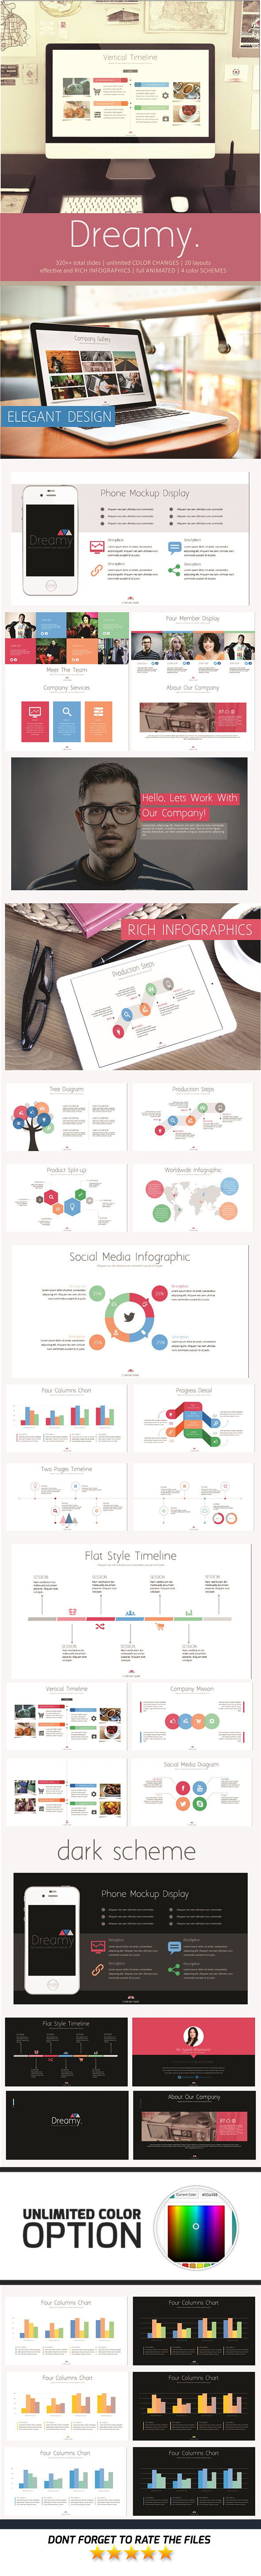 Dreamy PowerPoint Template - Business PowerPoint Templates